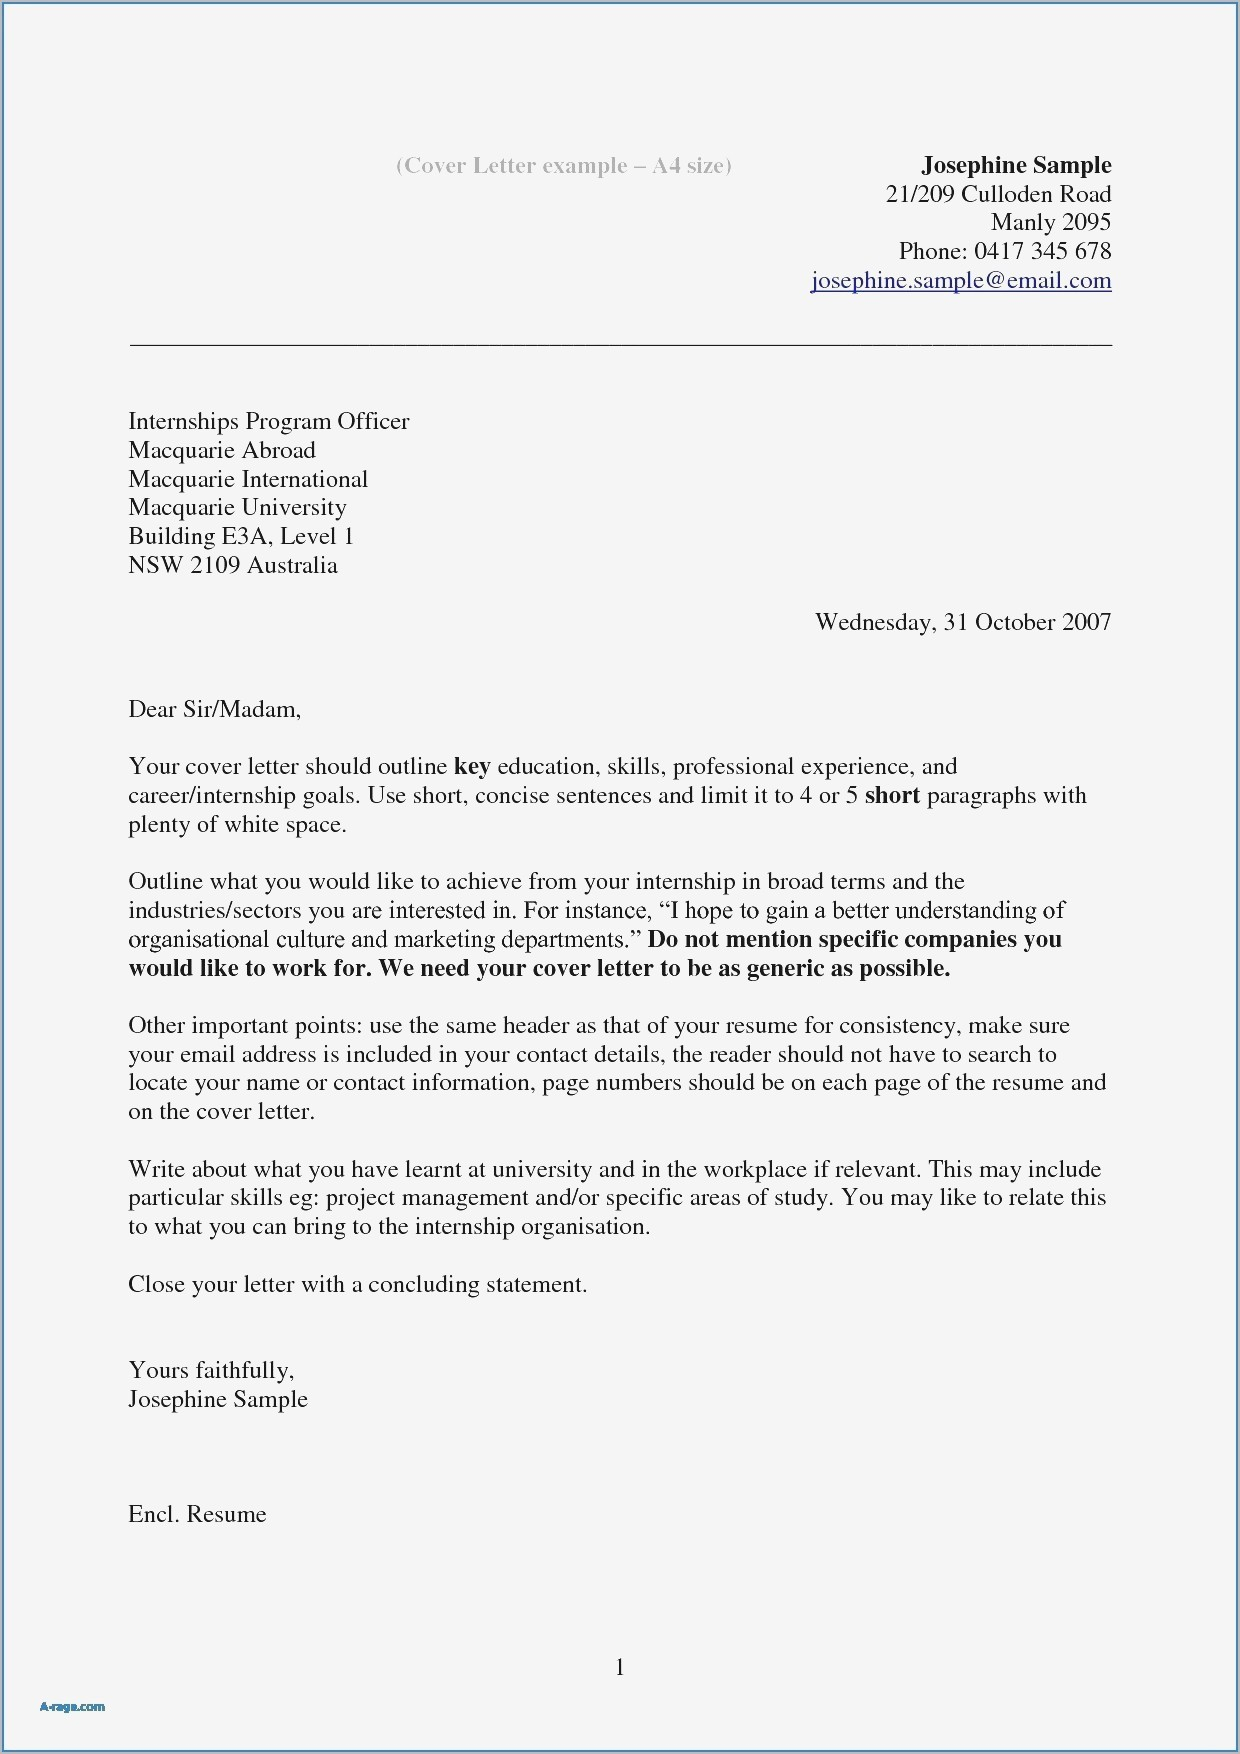 Construction Cover Letter Template - Cover Letters for Construction Jobs